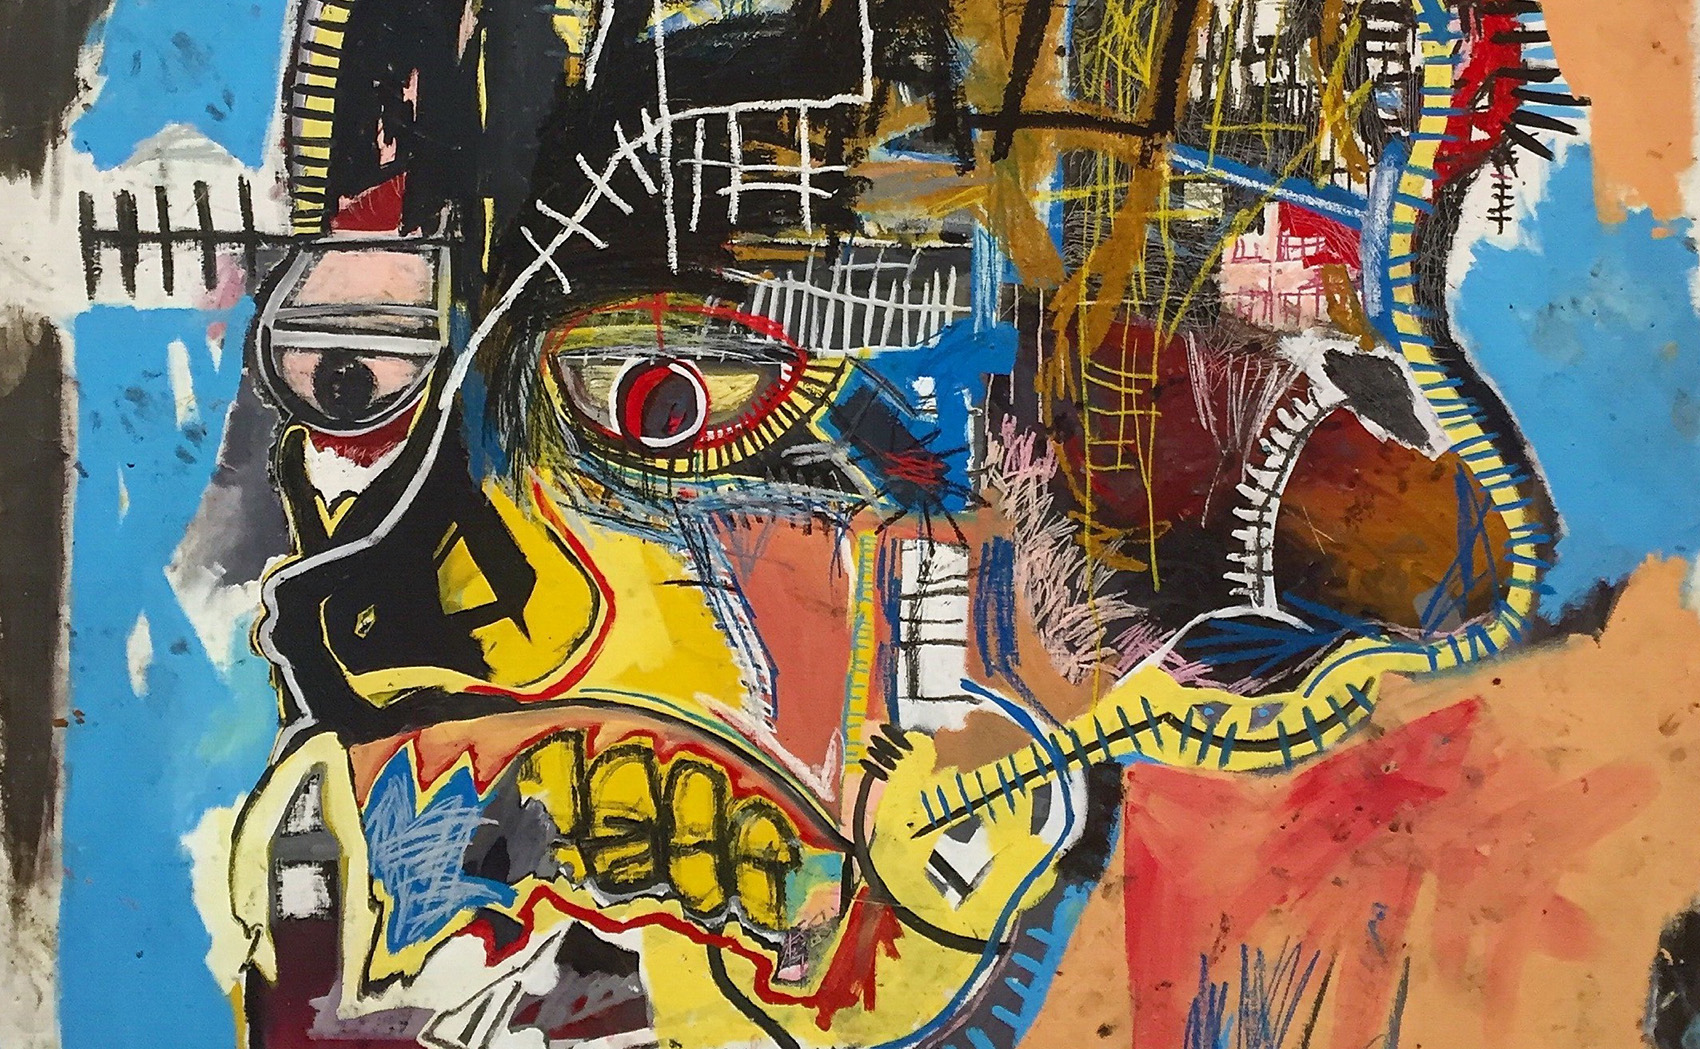 The art of jean michel basquiat legacy of a cultural icon